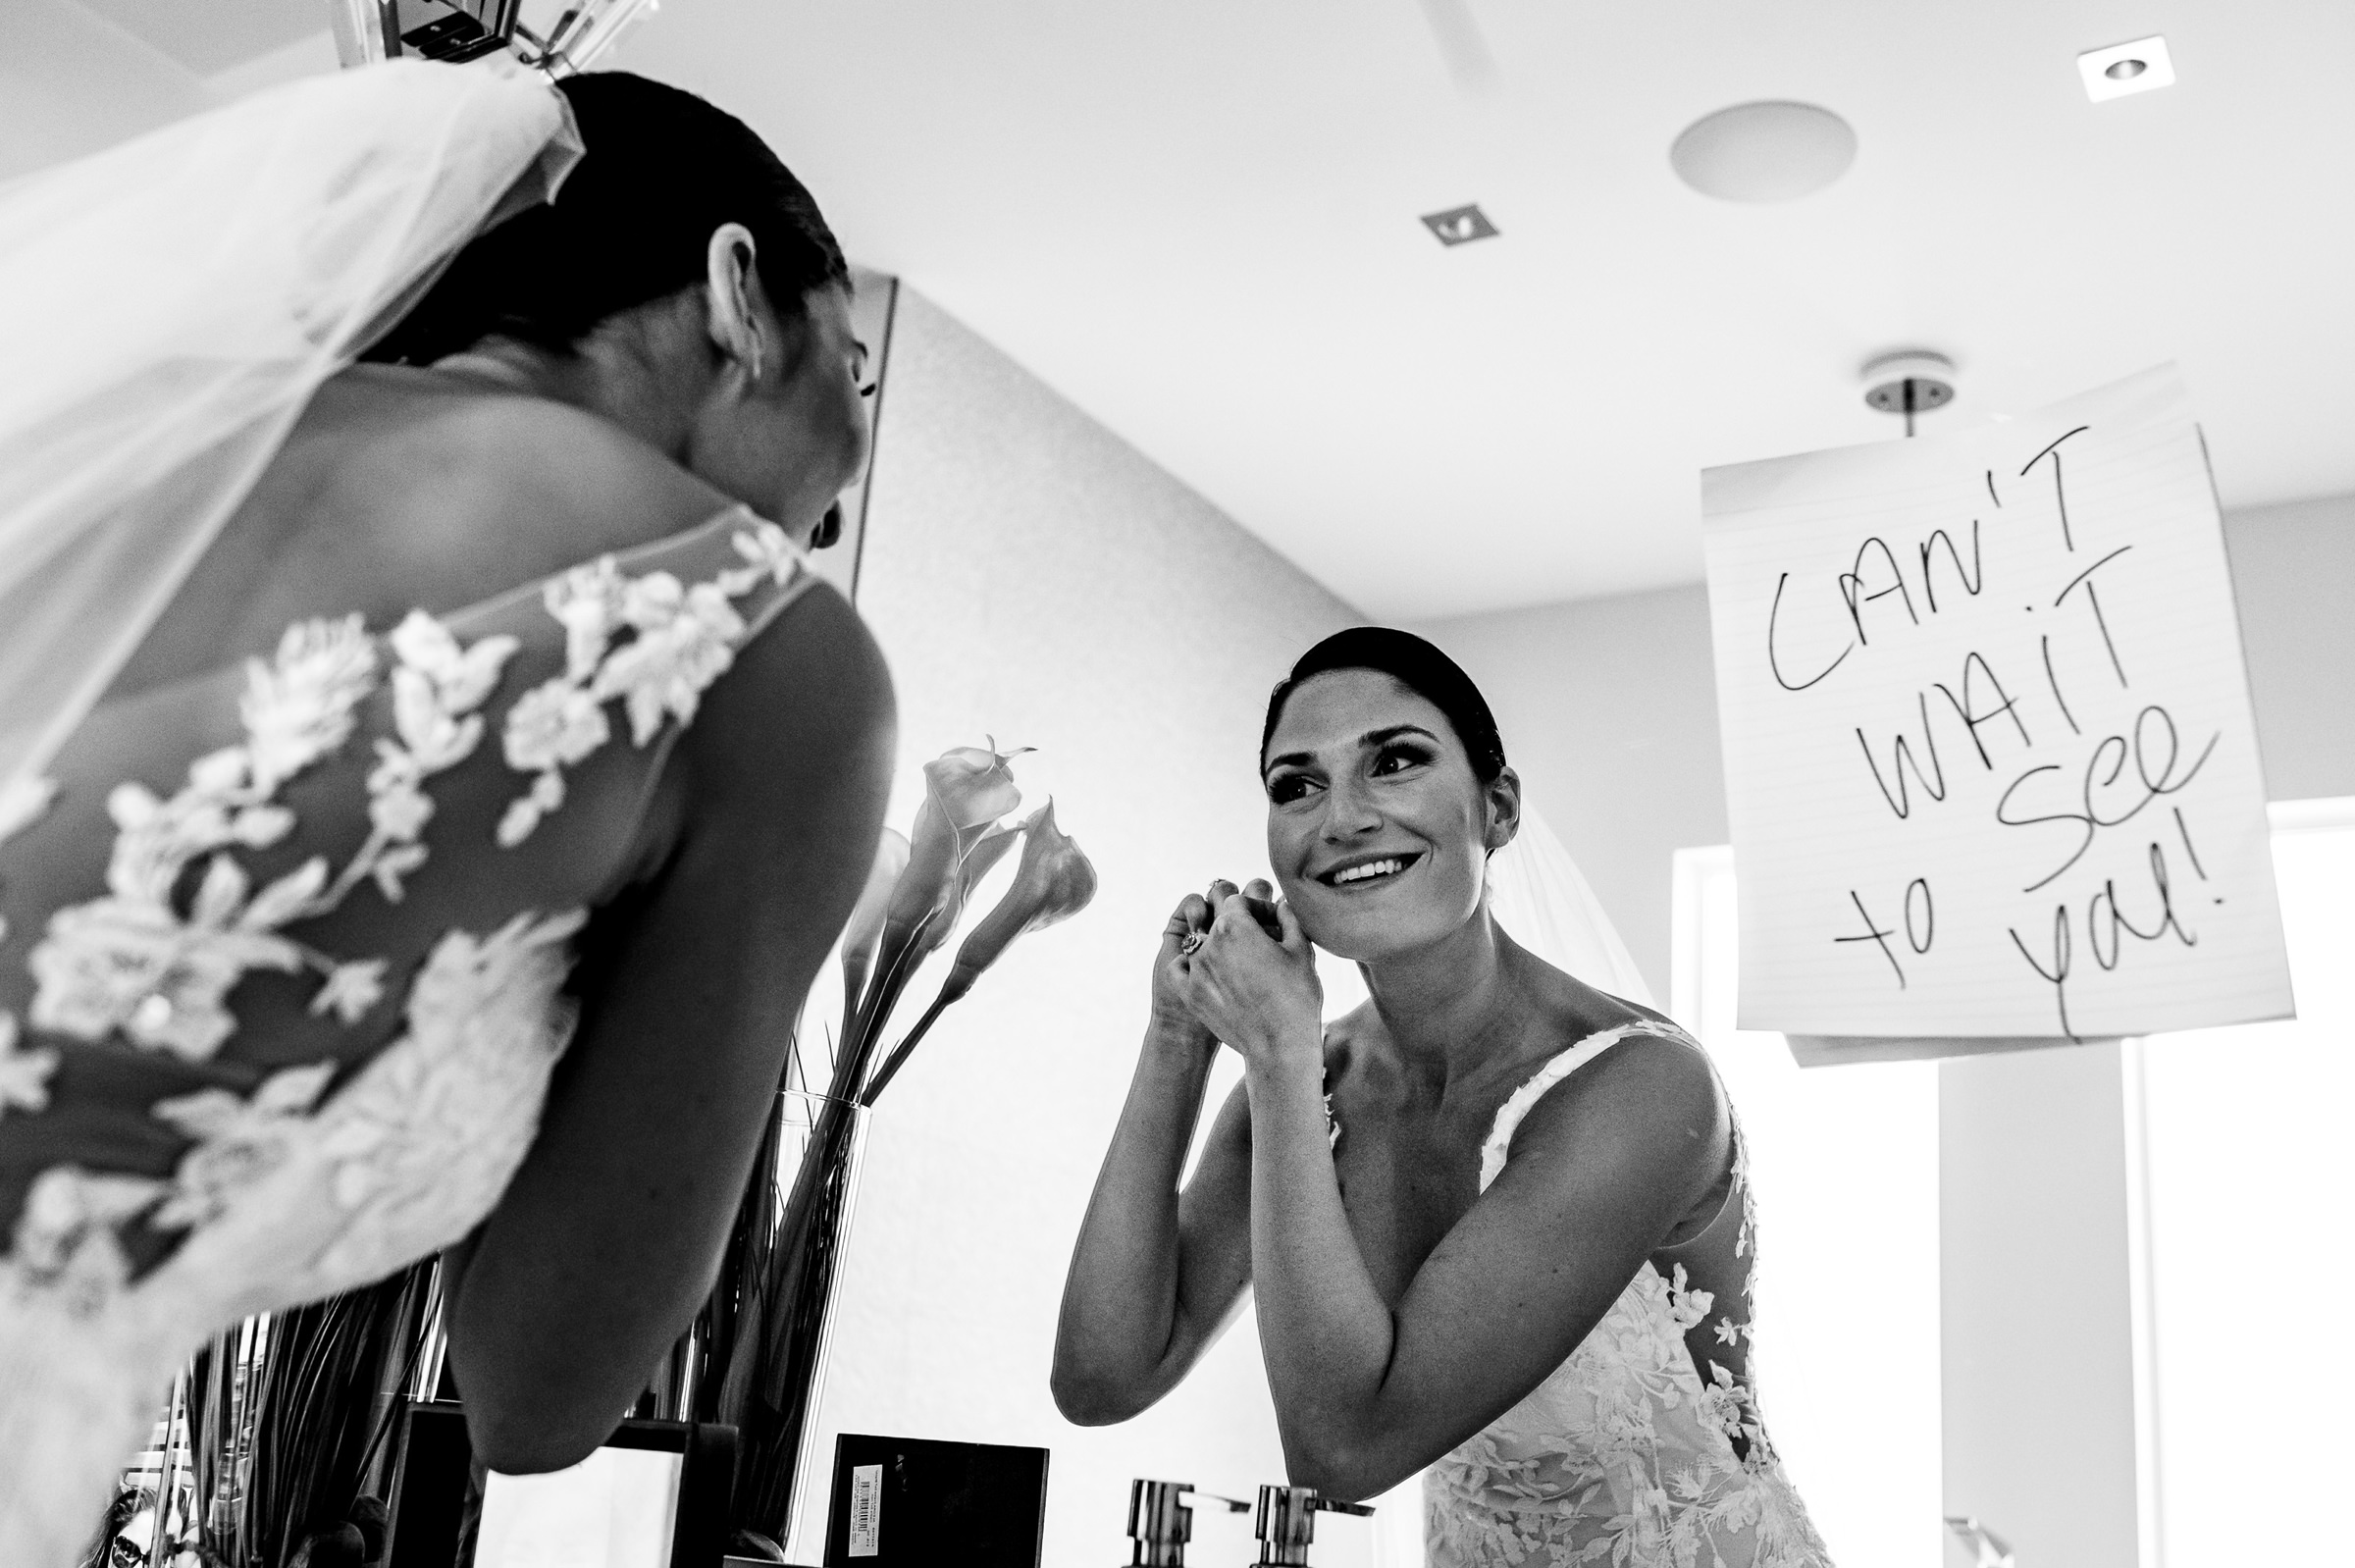 Bride in mirror with handwritten sign cant wait to see you - photo by Moore Photography